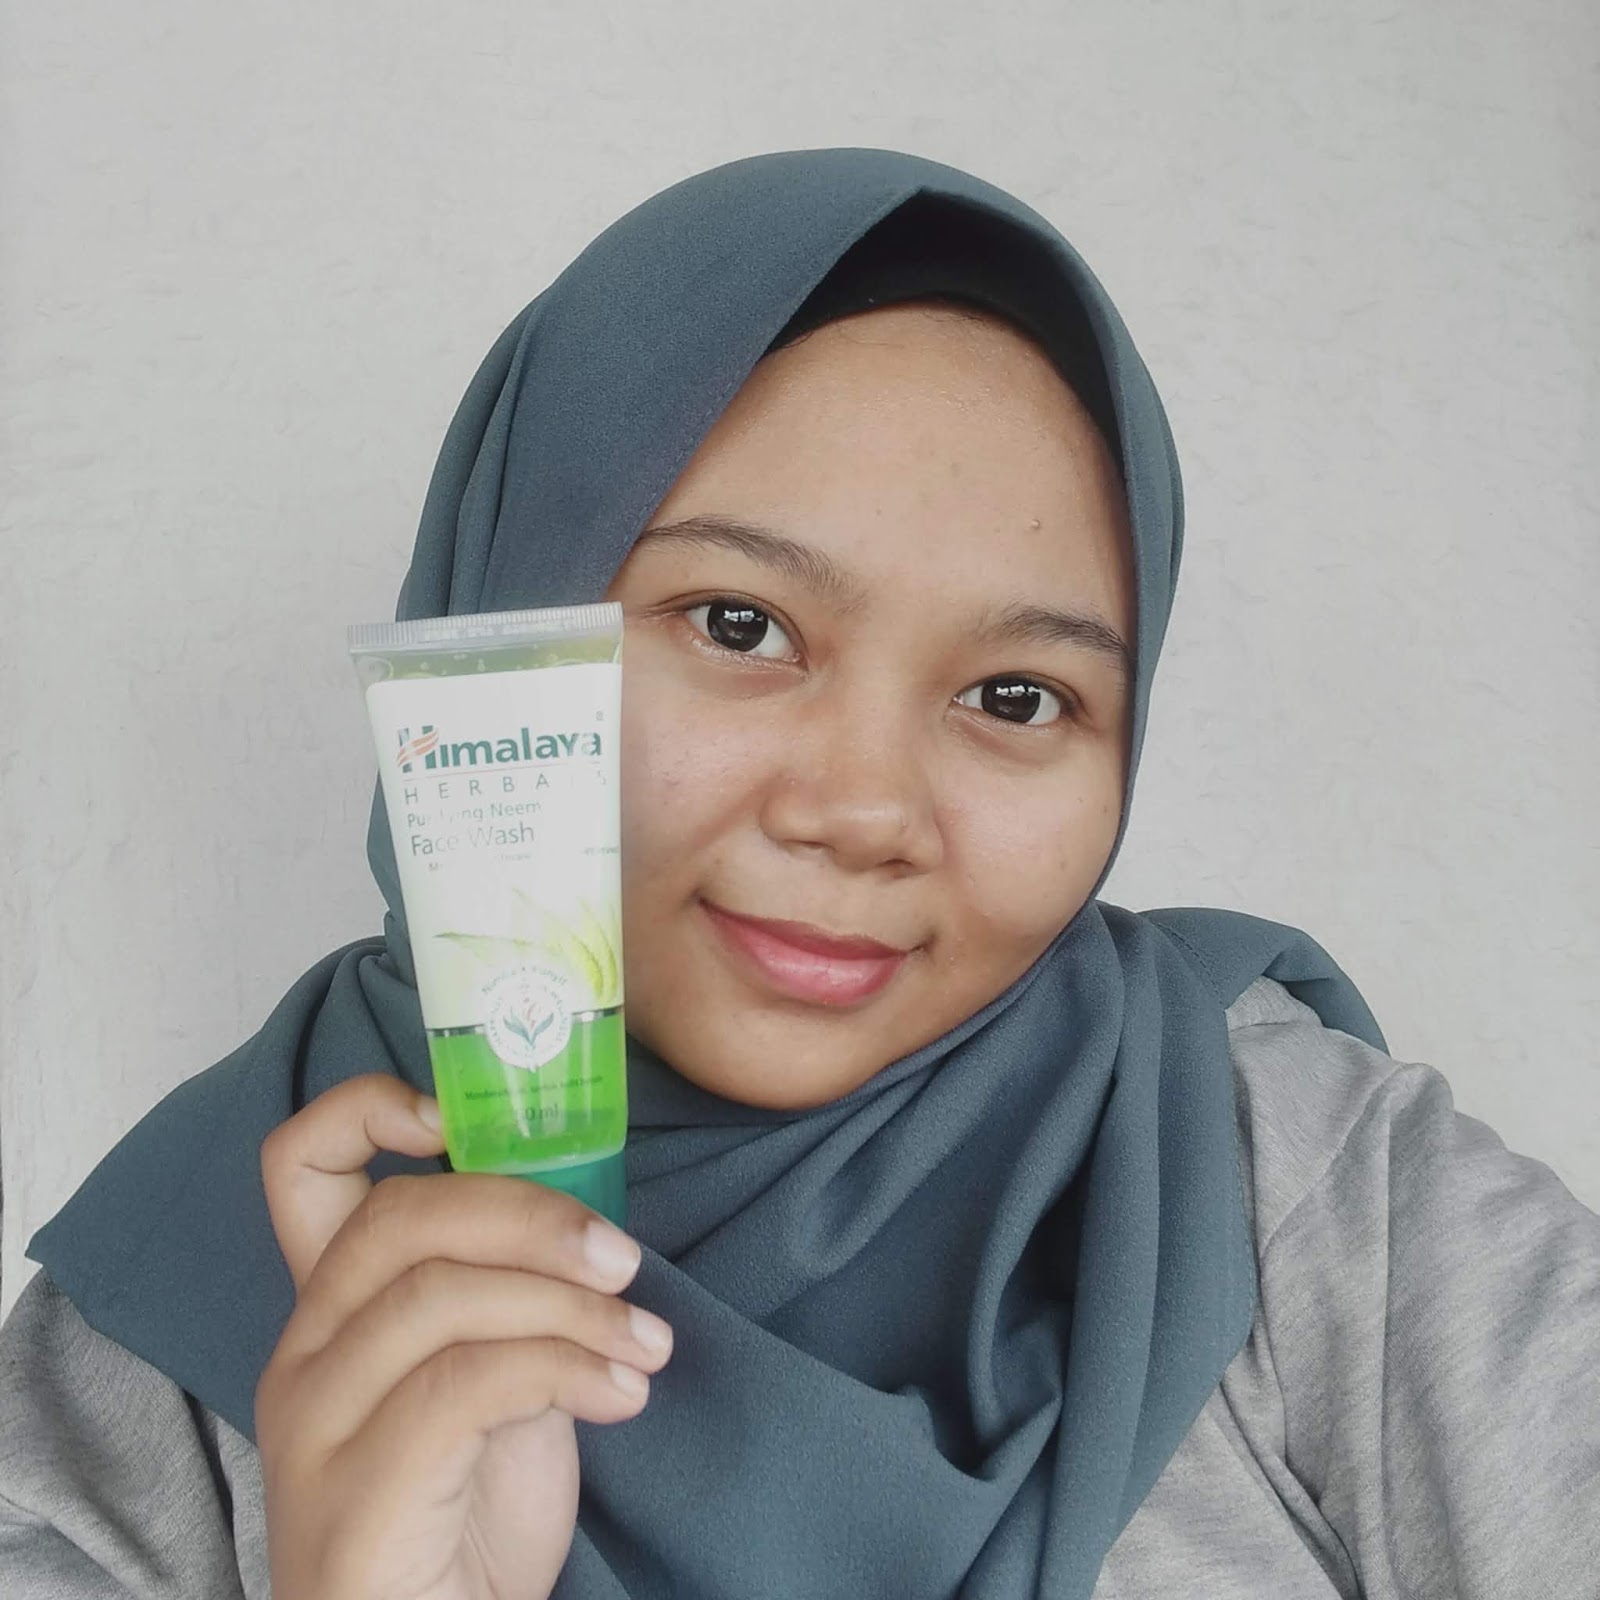 himalaya-herbals-neem-face-wash-review